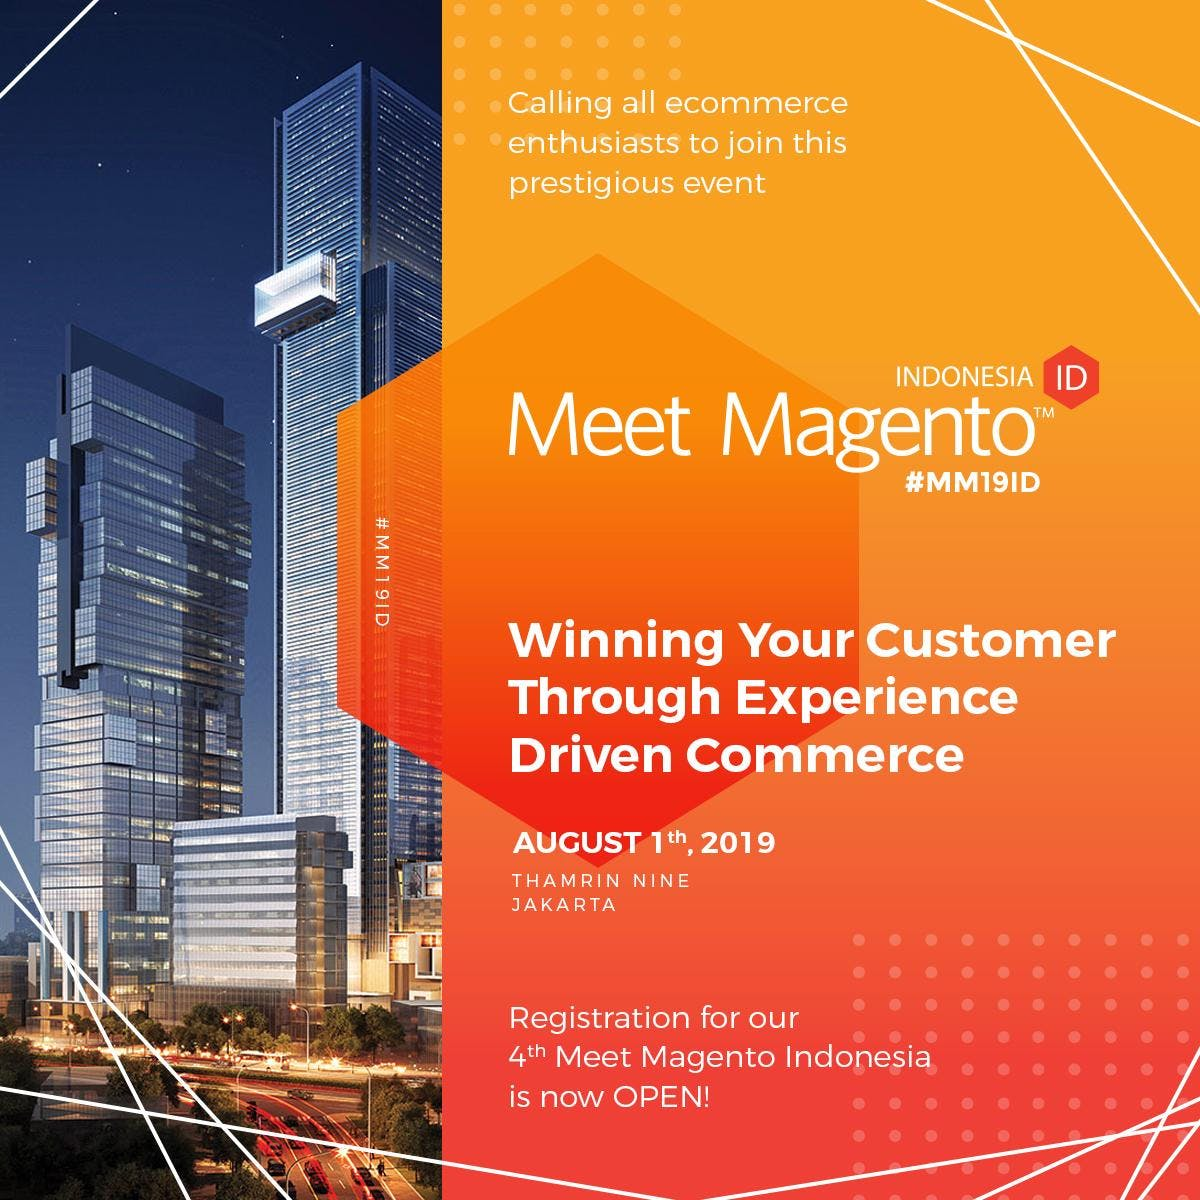 Meet Magento Indonesia 2019 - Leading eCommerce Conference in Jakarta